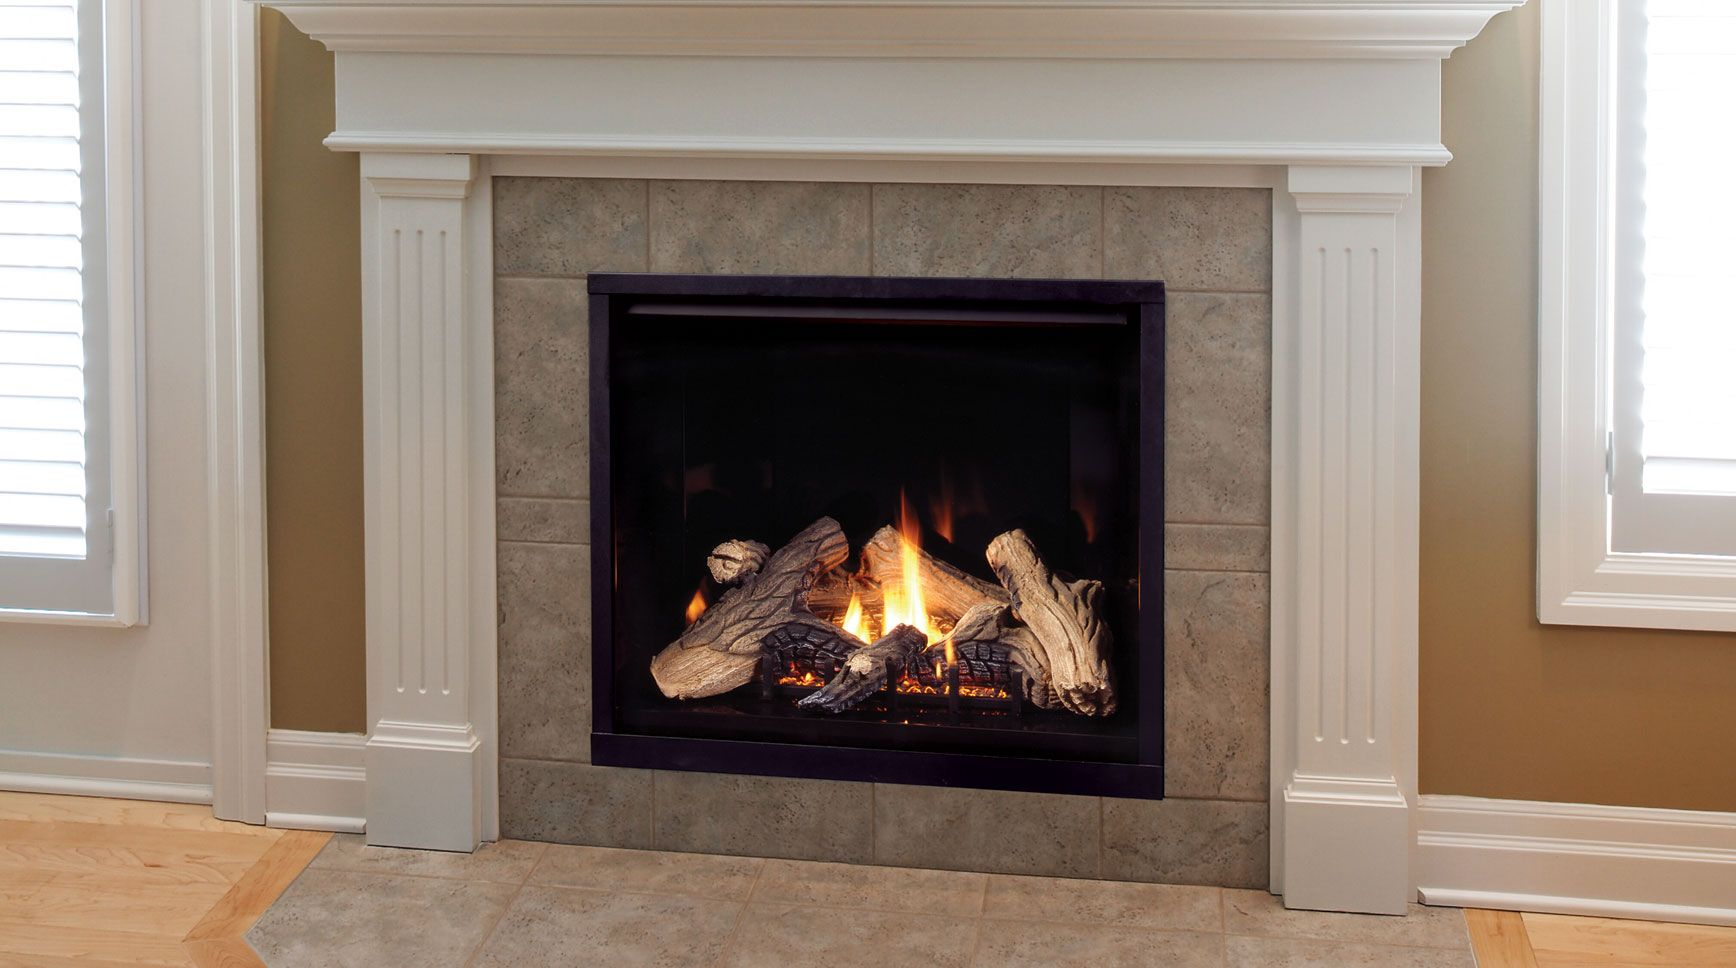 Gas Fireplace Series Direct Vent Gas Fireplace Serenade Direct